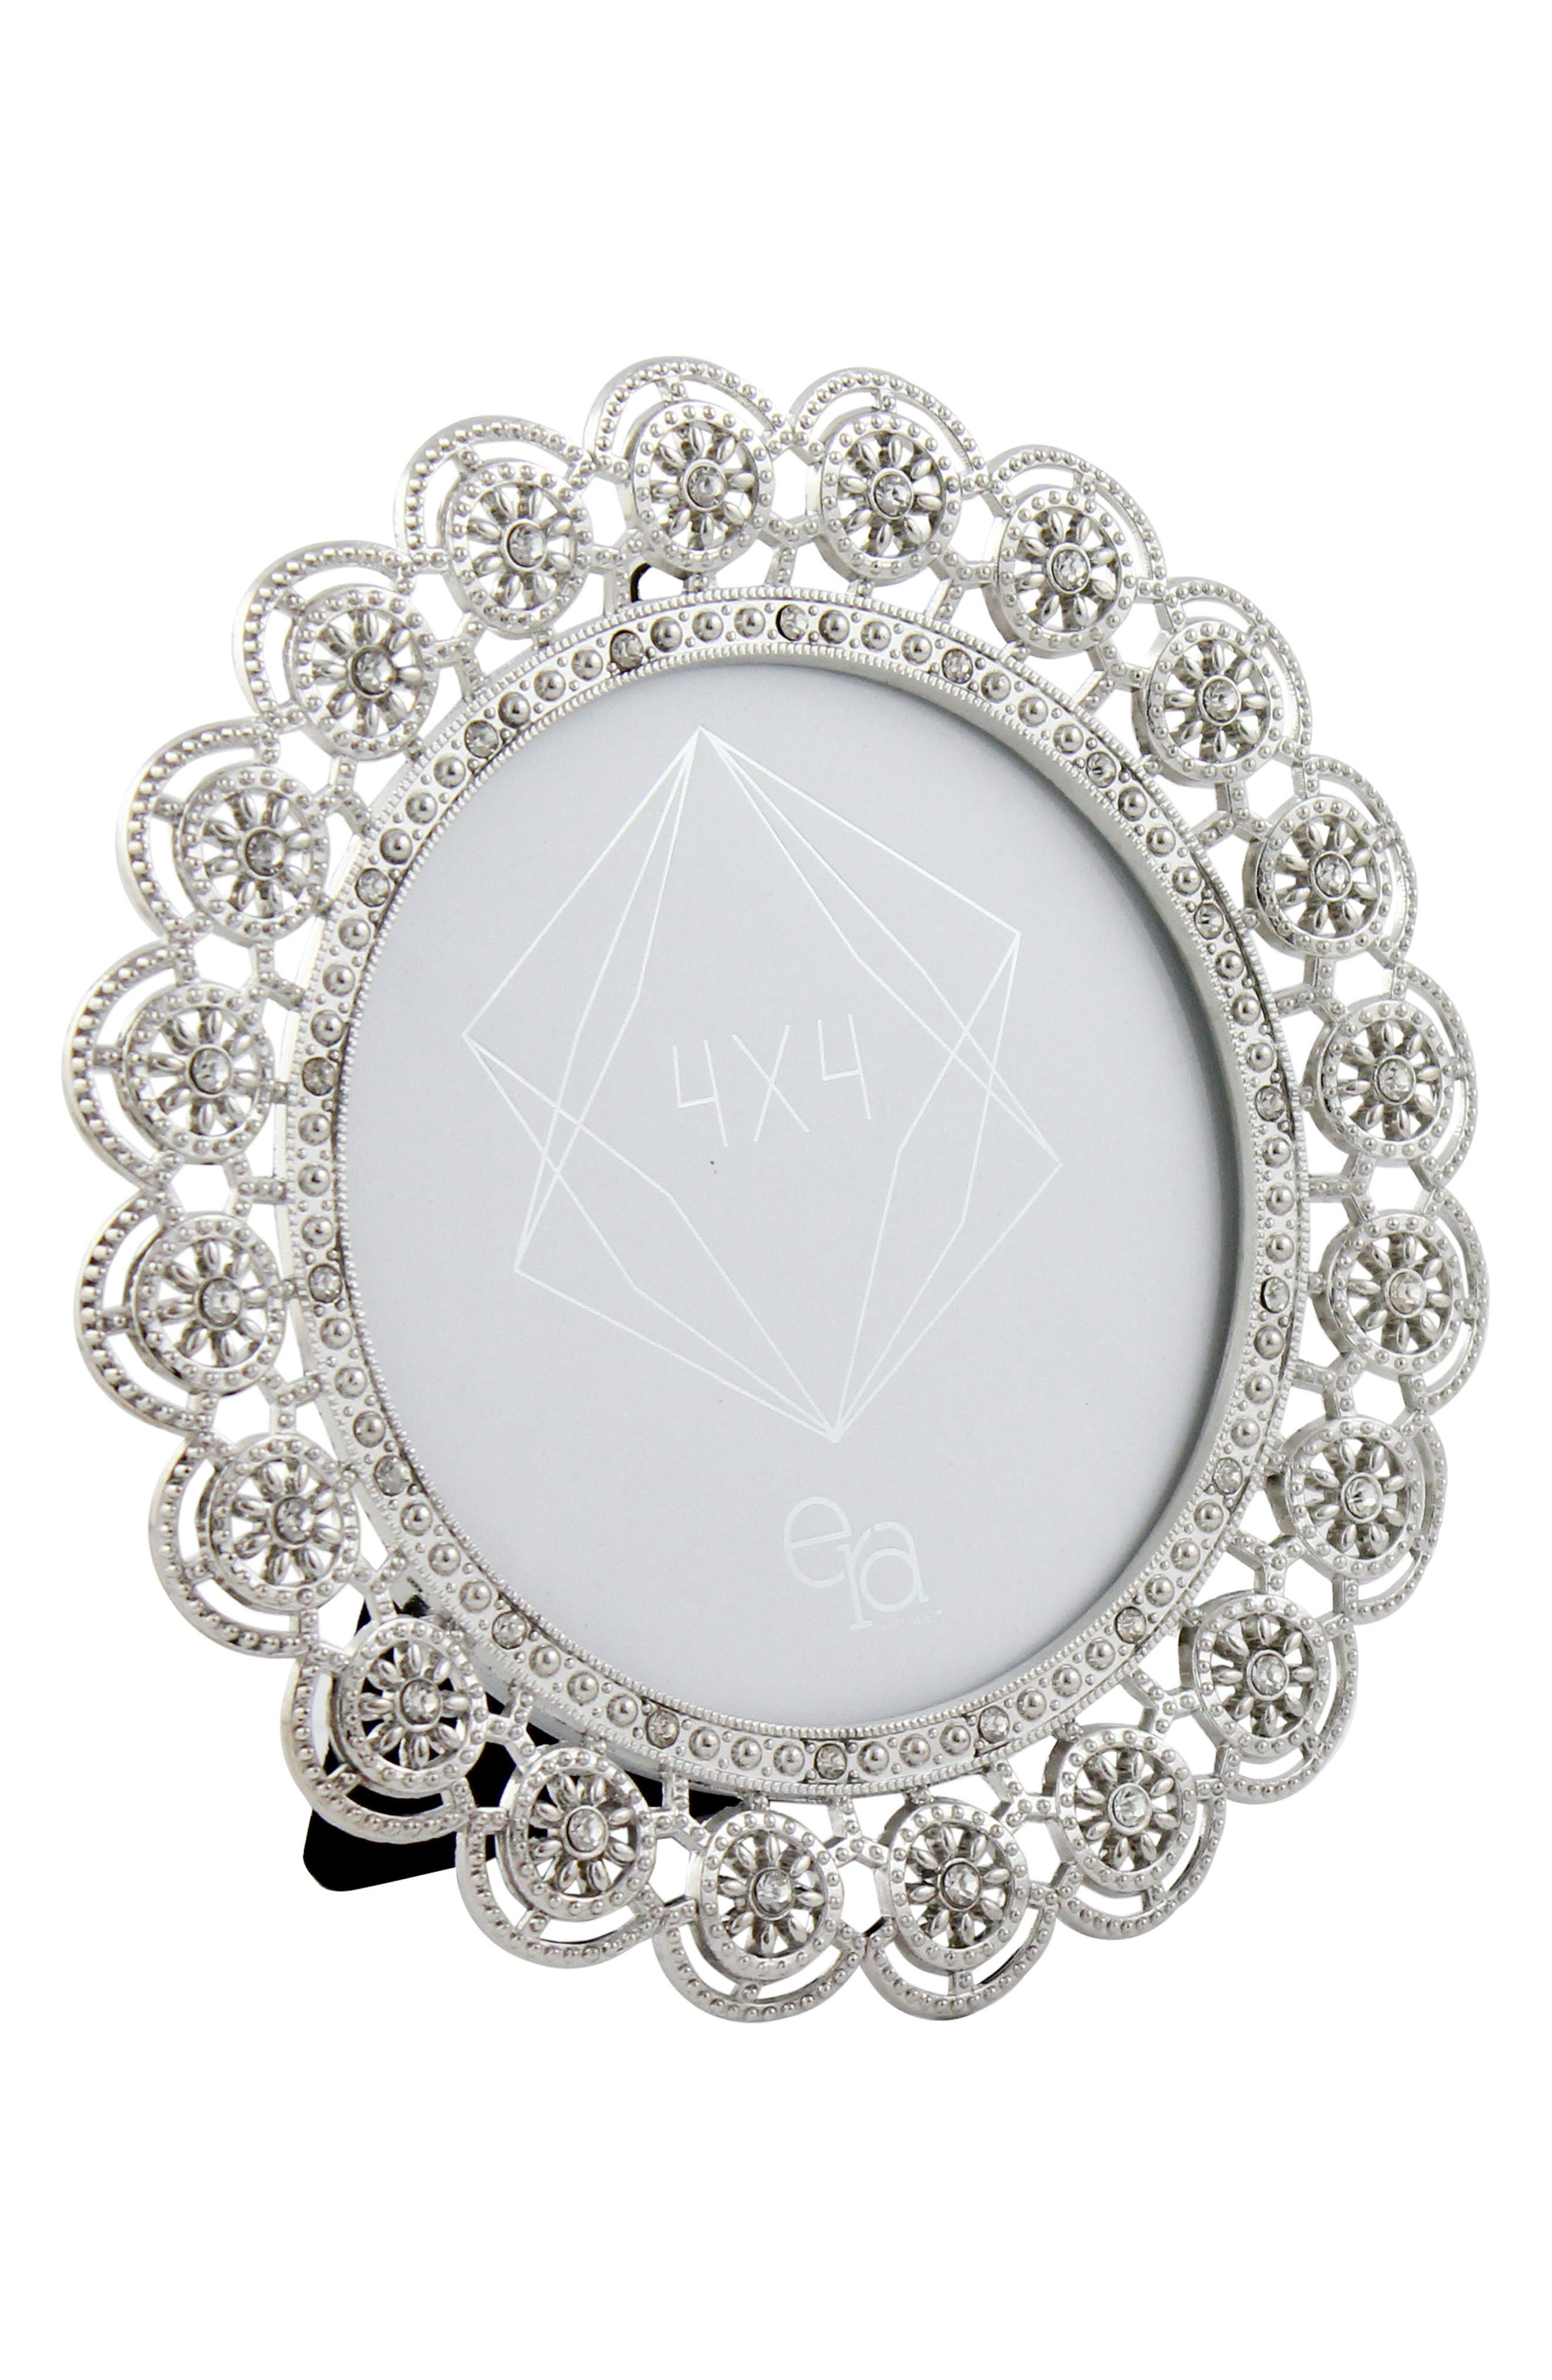 Main Image - Era Home Crystal Round Picture Frame